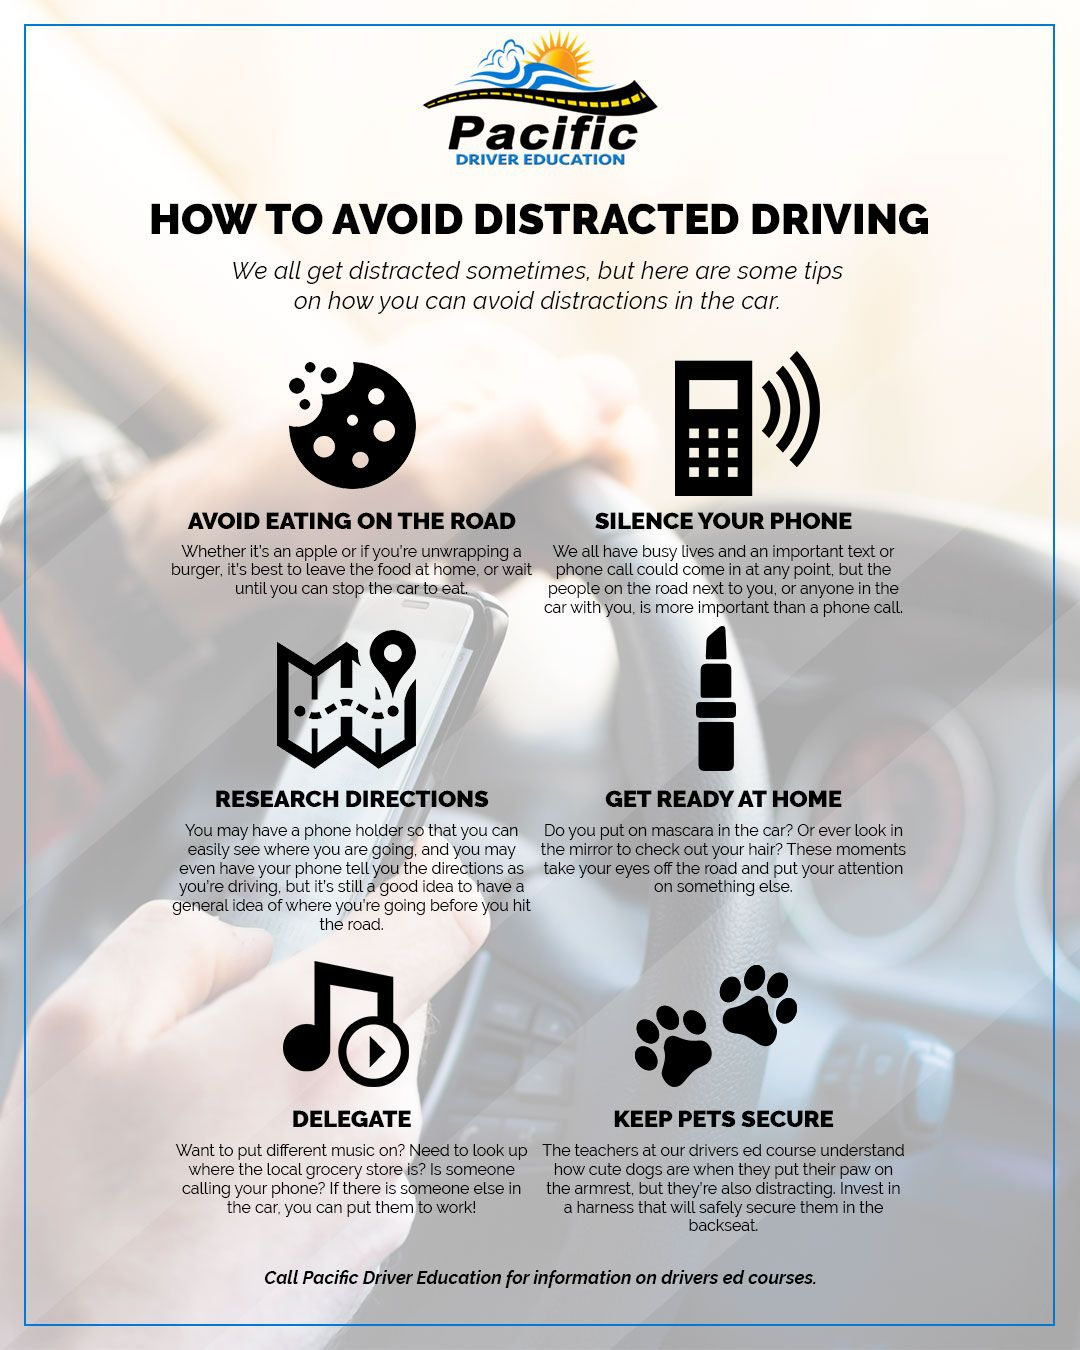 Pacific-Driver-Education-LLC-Infographic-5b30f688b5bfe.jpg